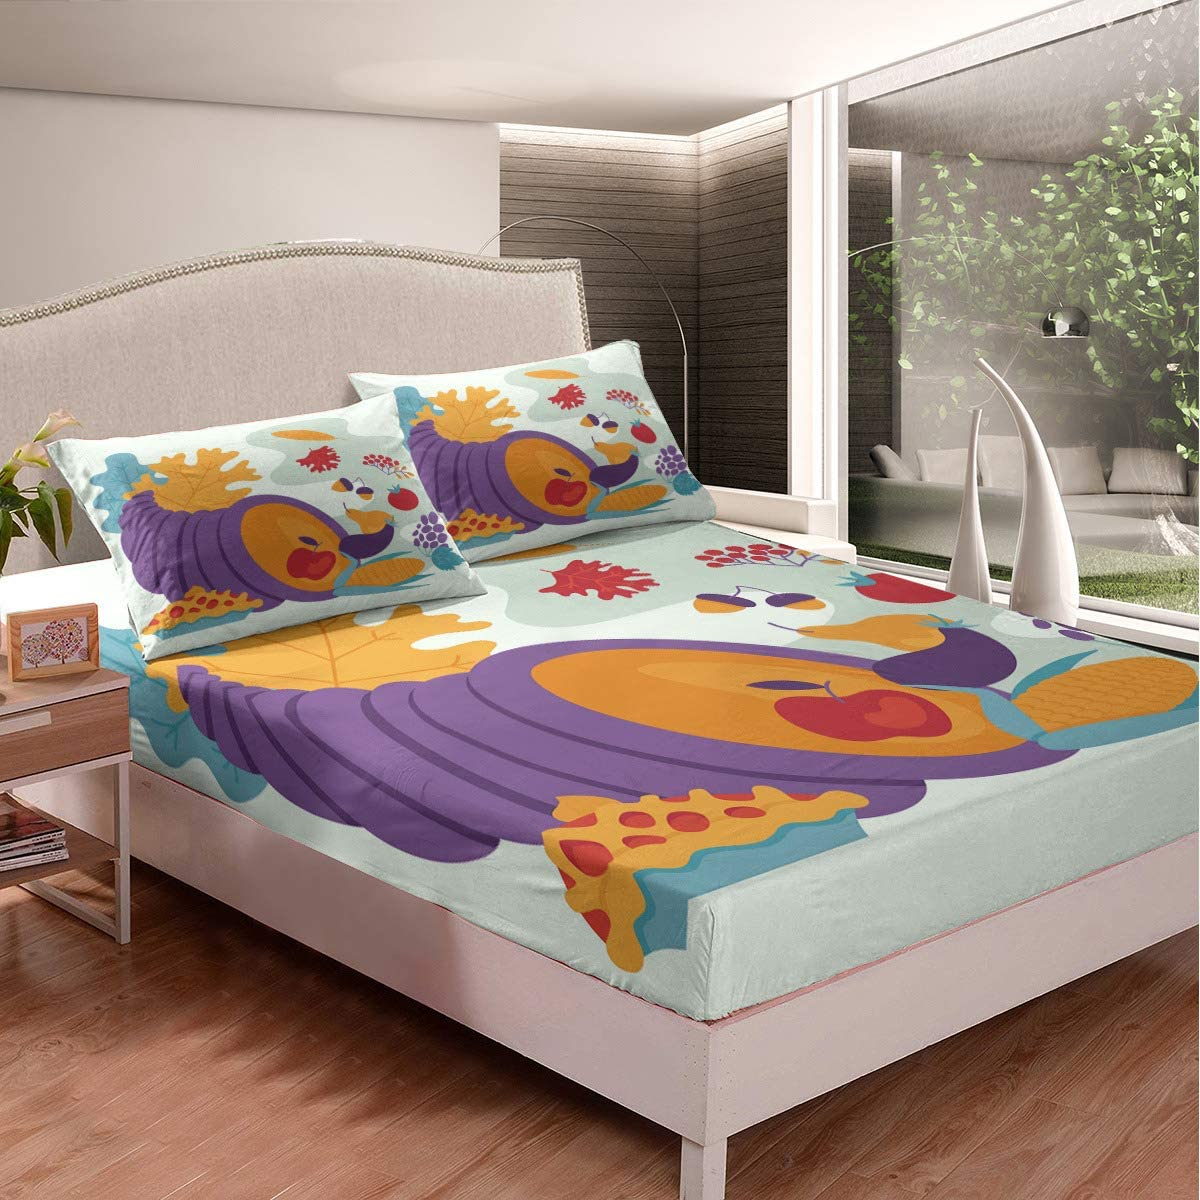 Food Collections Boys Girls Fitted Fruit Pattern Overseas parallel import regular item Full Save money Sheet Kids